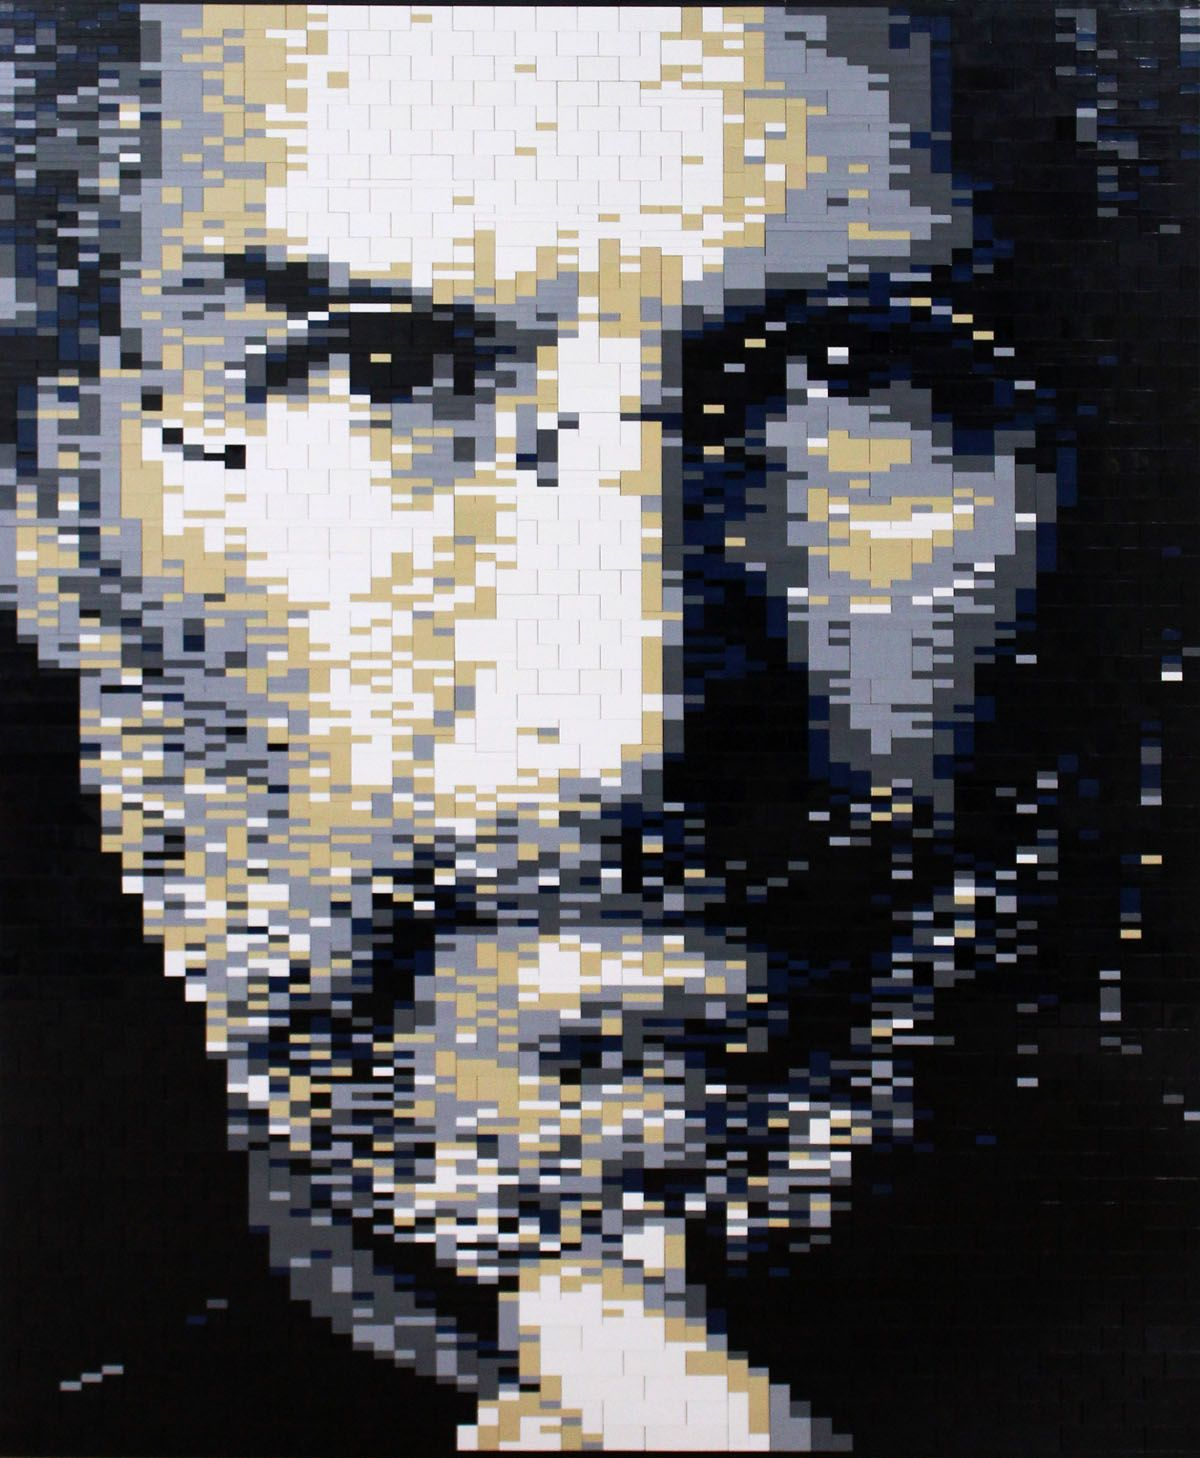 LEGO Steve Jobs Mosaic by Keith Orlando